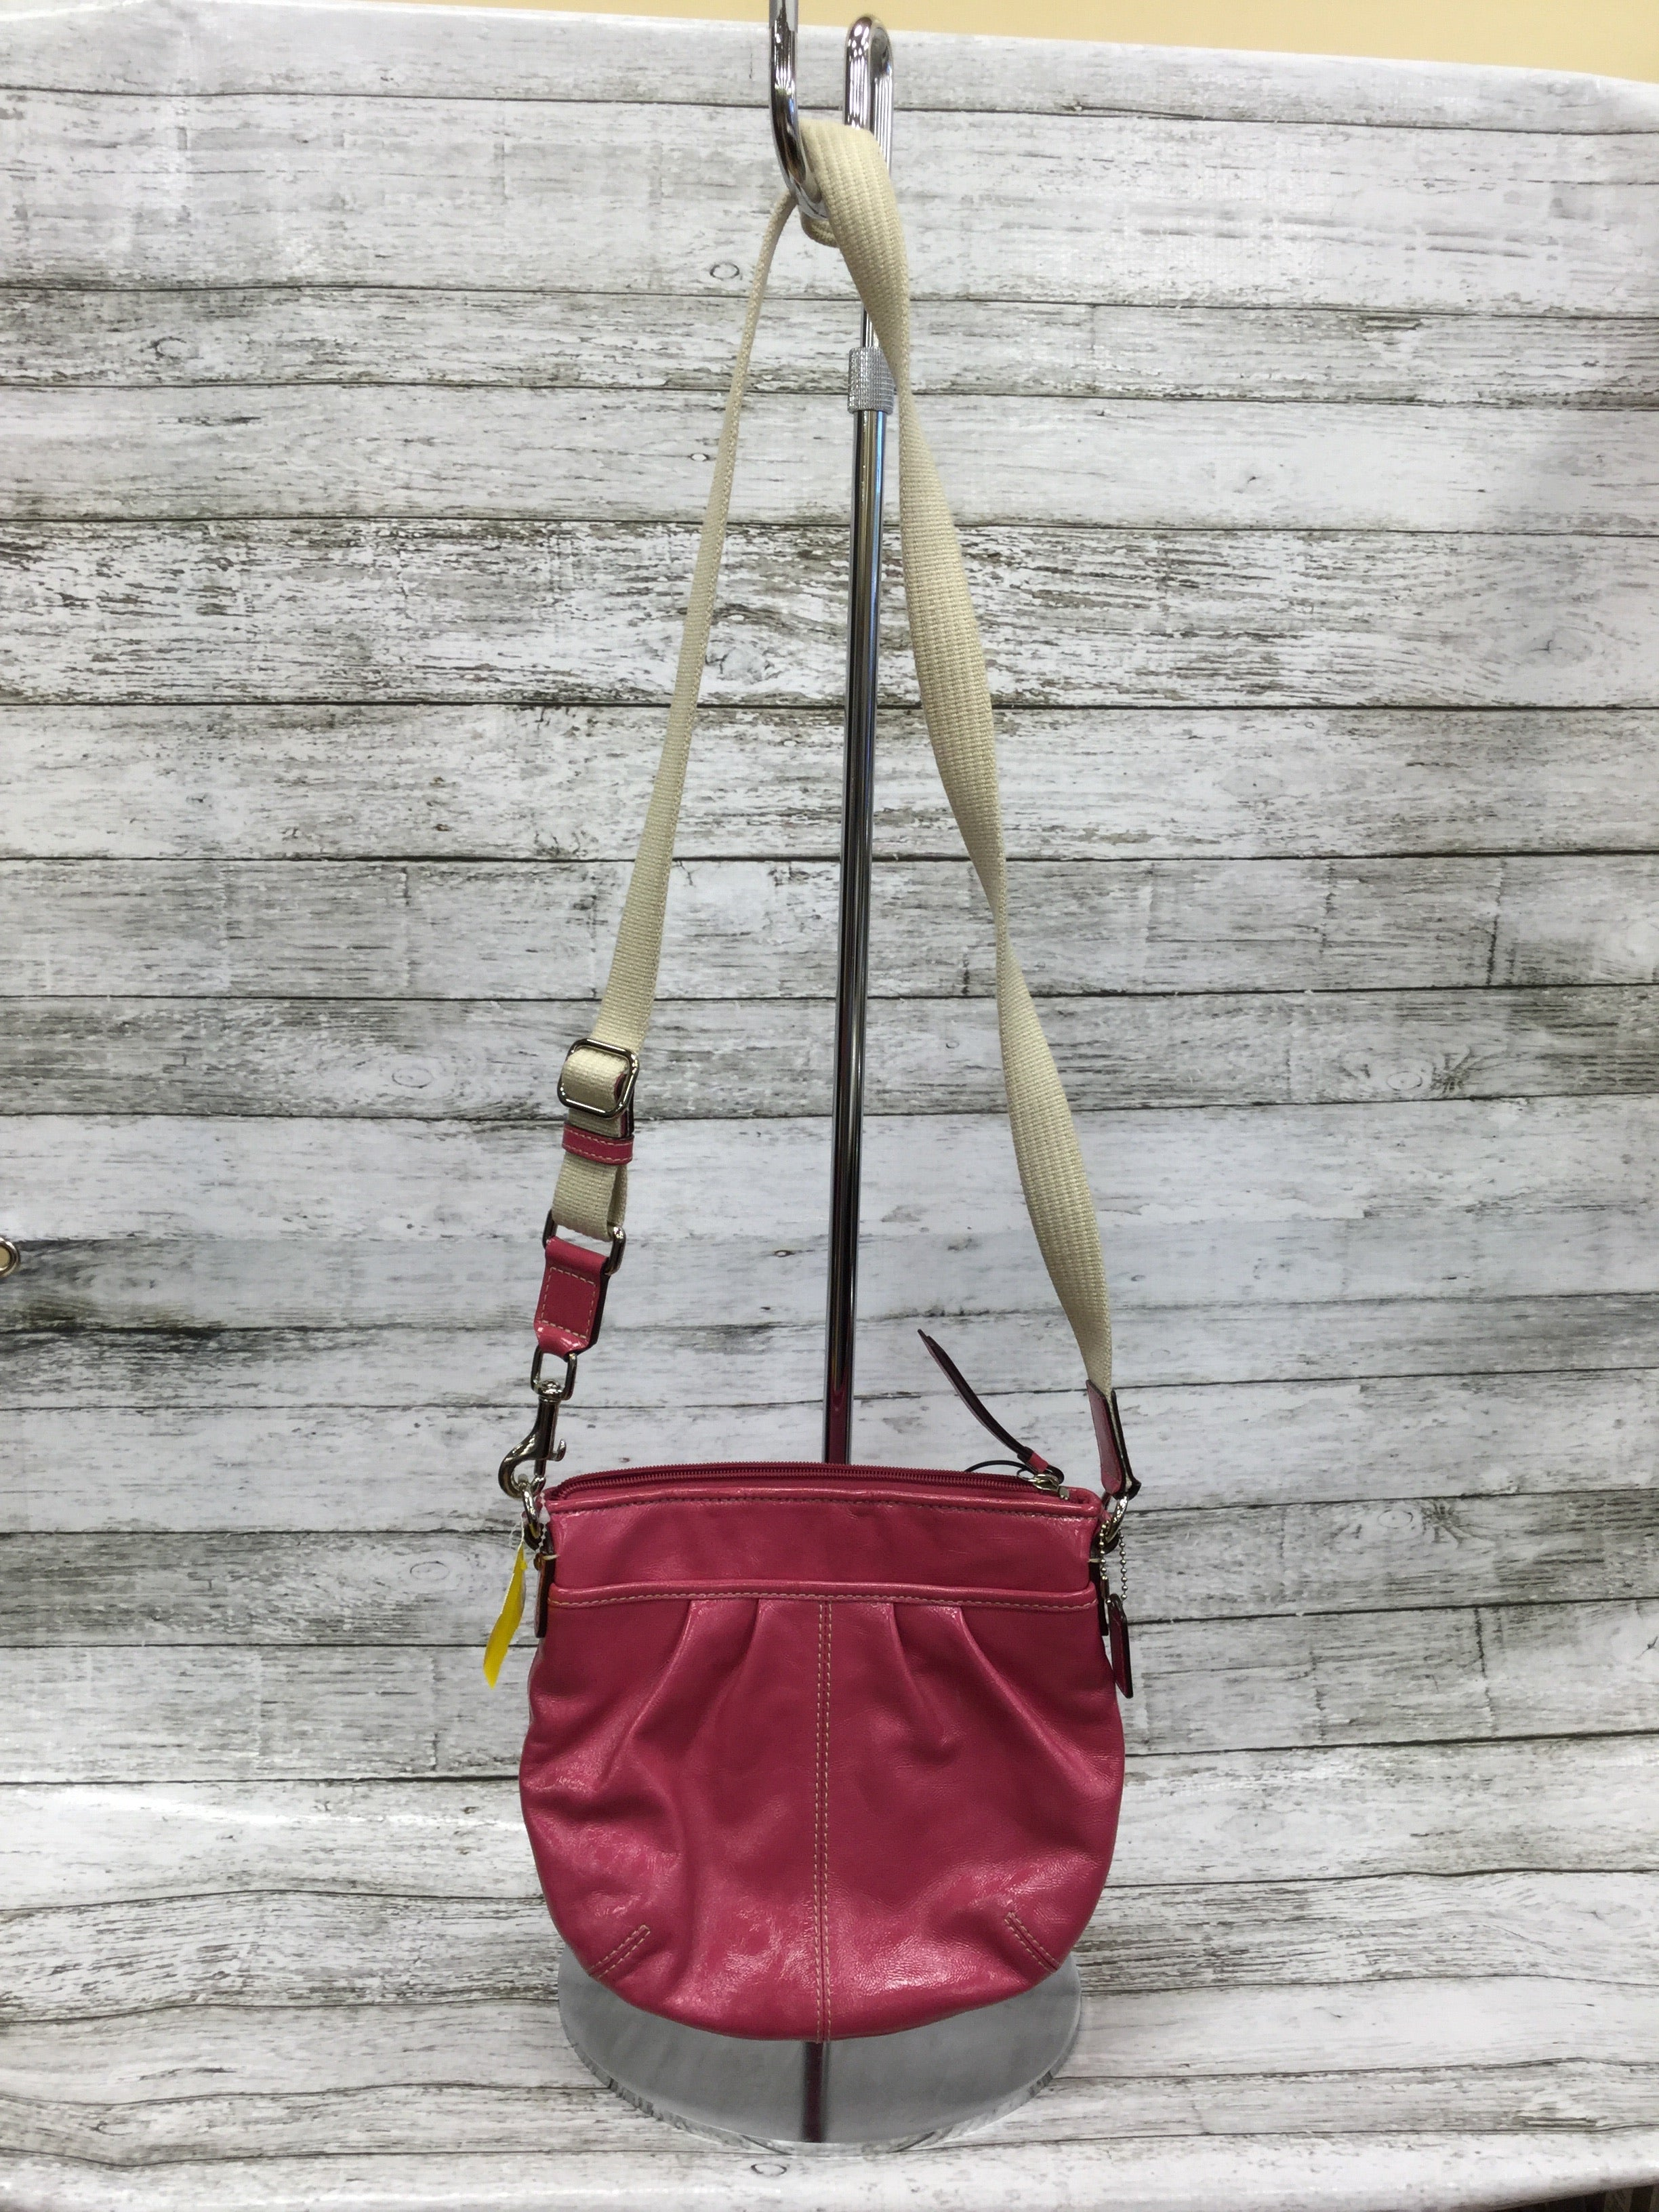 Primary Photo - BRAND: COACH O <BR>STYLE: HANDBAG DESIGNER <BR>COLOR: PINK <BR>SIZE: SMALL <BR>SKU: 127-4954-4369